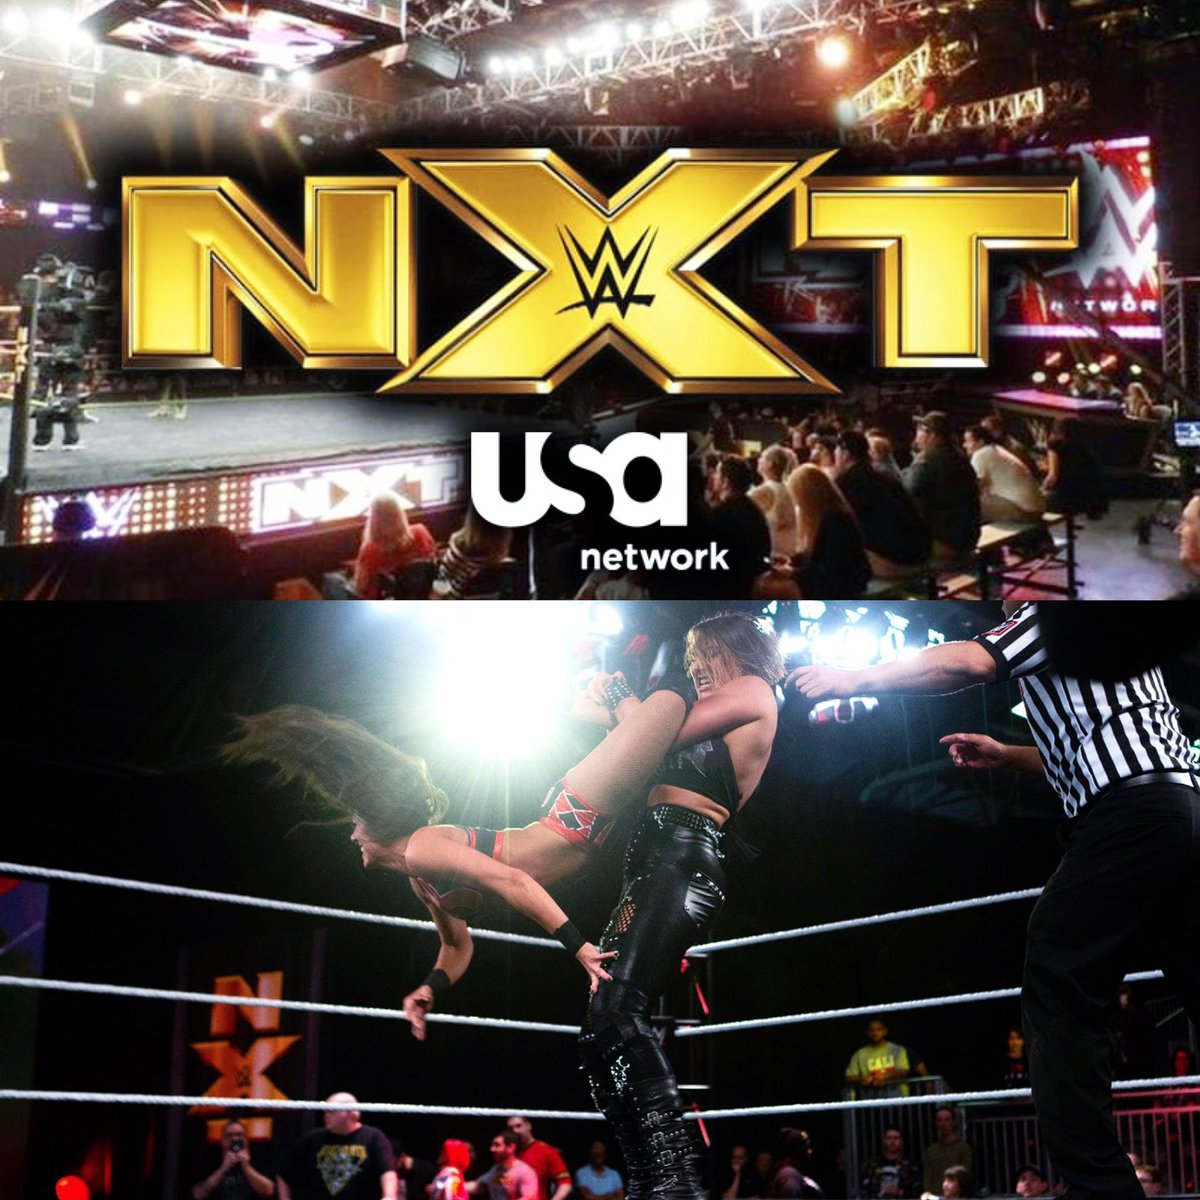 👹👹👹BREAKING: @WWENXT MOVES TO @USA_Network@WWE & @USA_Network have announced an agreement in principle to air WWE's weekly Wednesday night show, @WWENXT live on USA Network at 8/7c starting Sept 18. The two-hour weekly show will continue to emanate from @FullSail in Orlando.